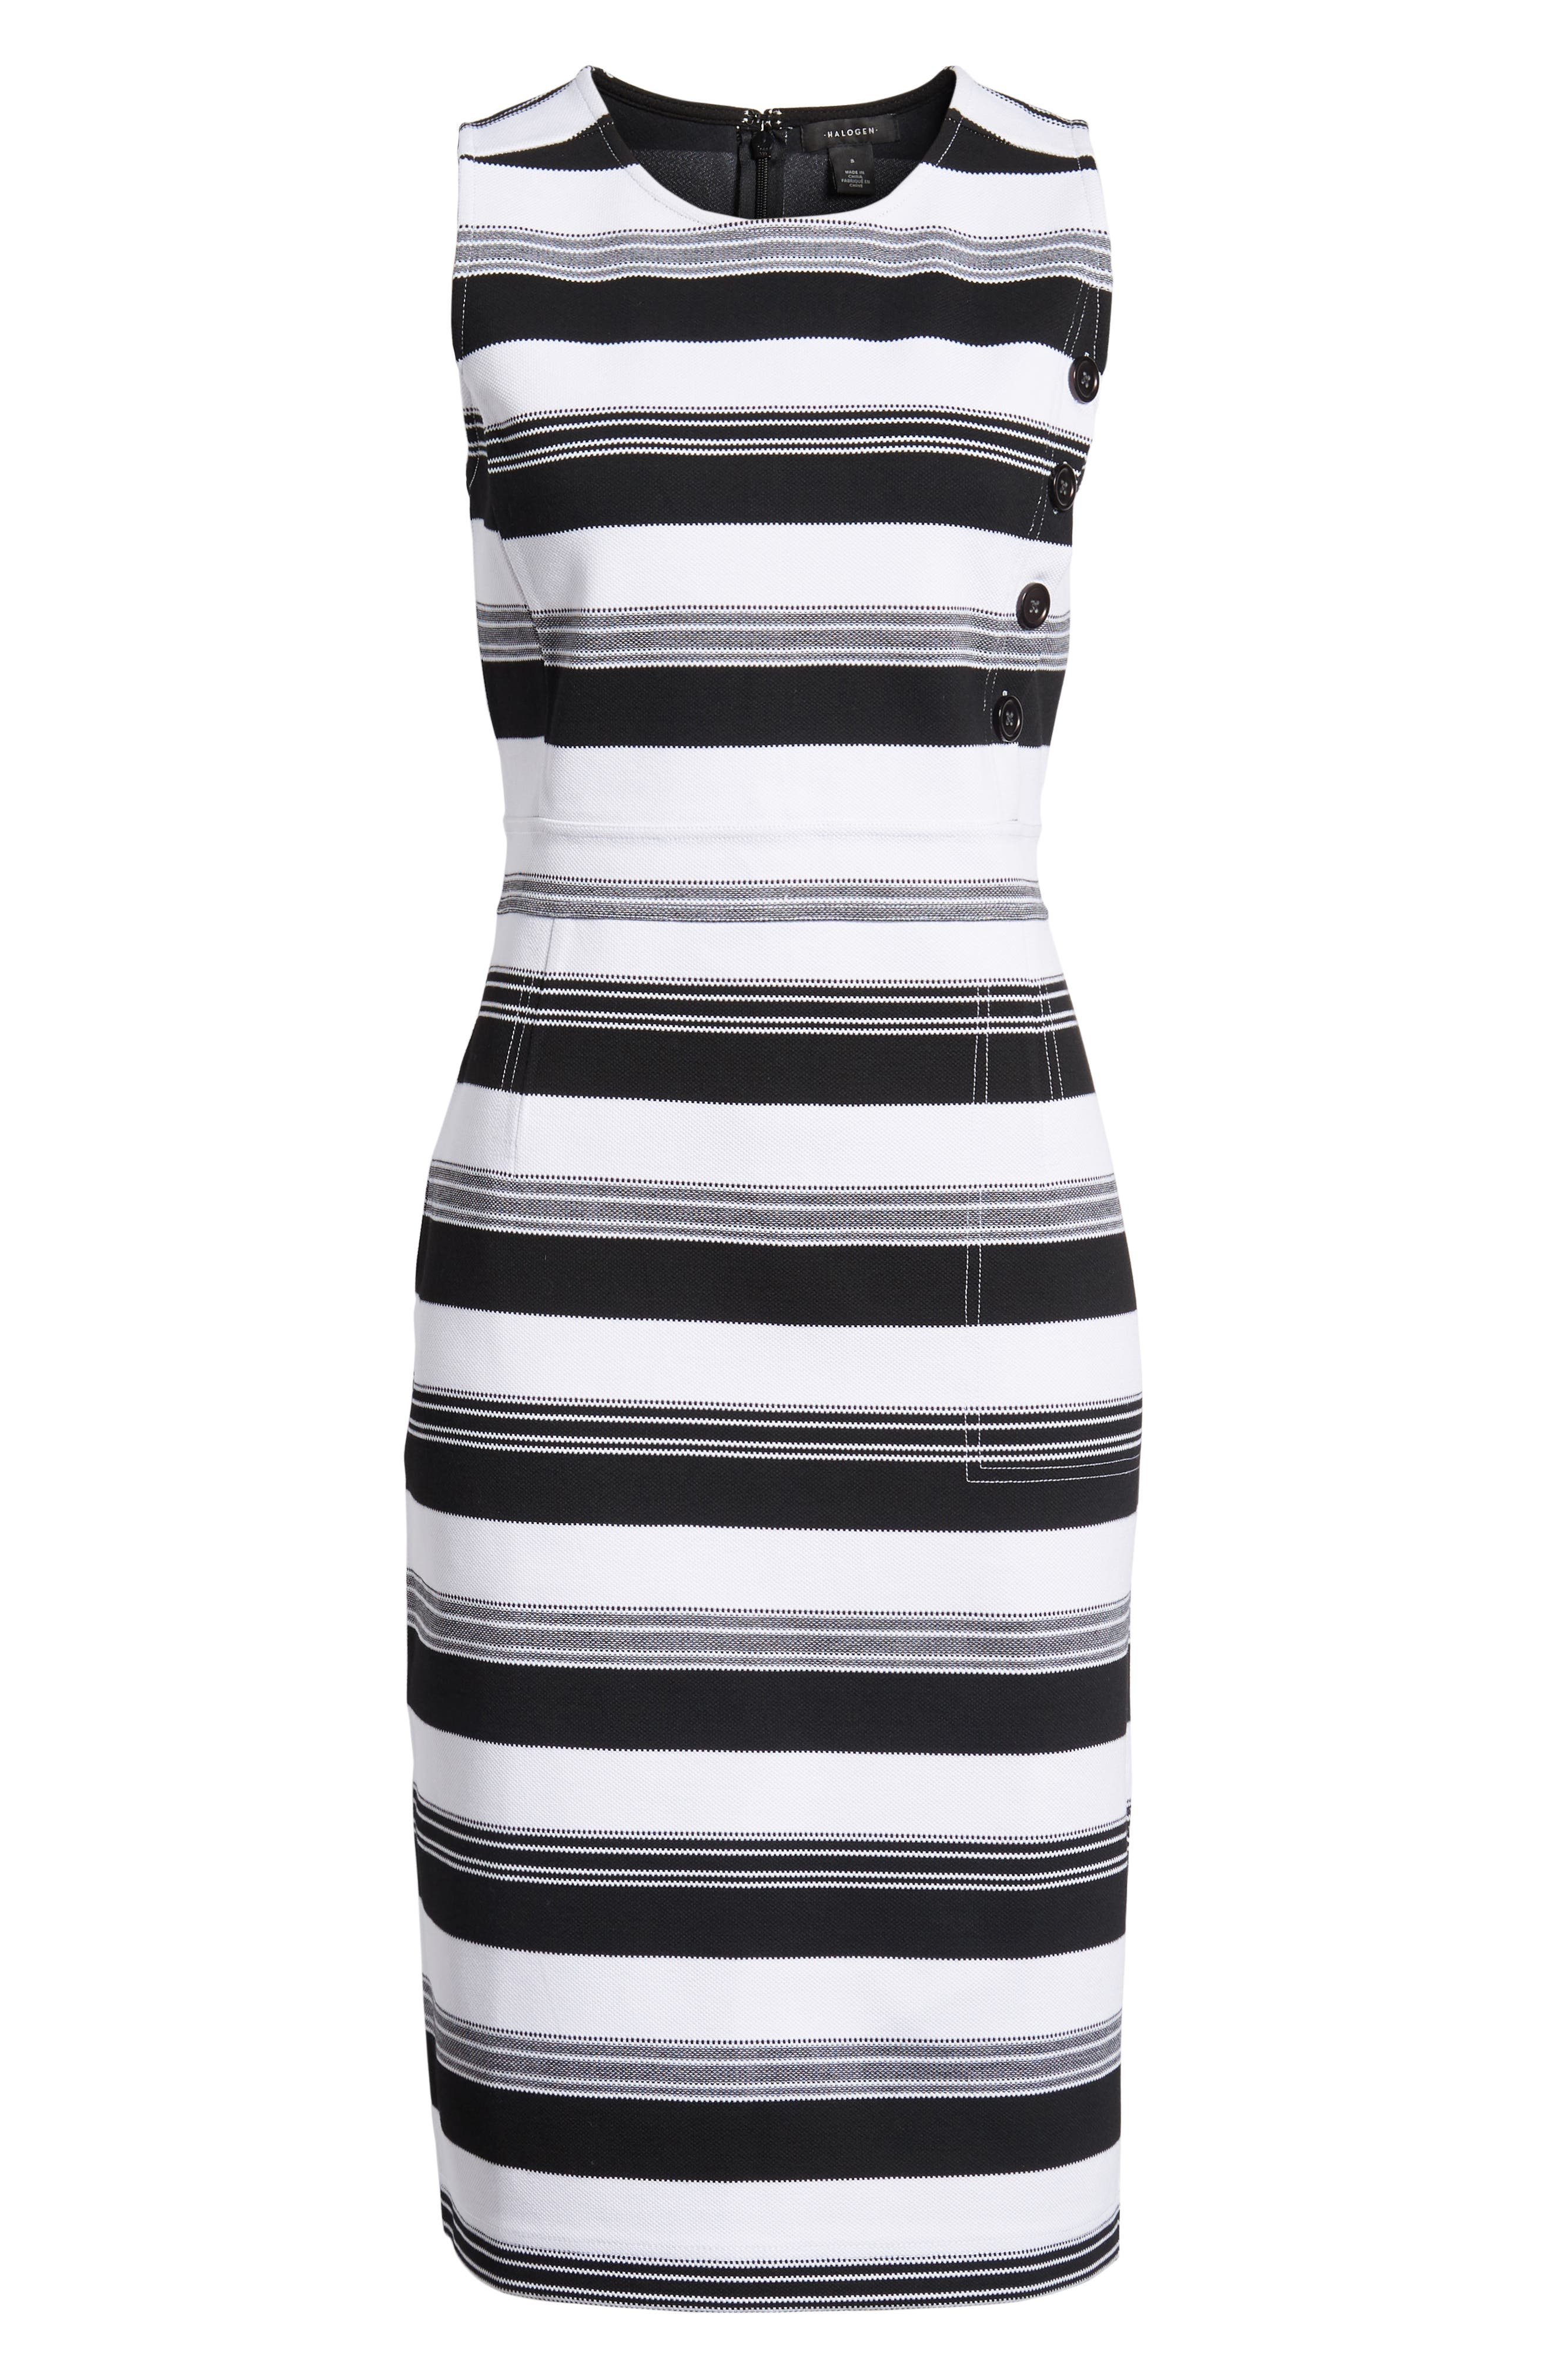 Stripe Knit Dress,                             Alternate thumbnail 7, color,                             Black- Ivory Stripe